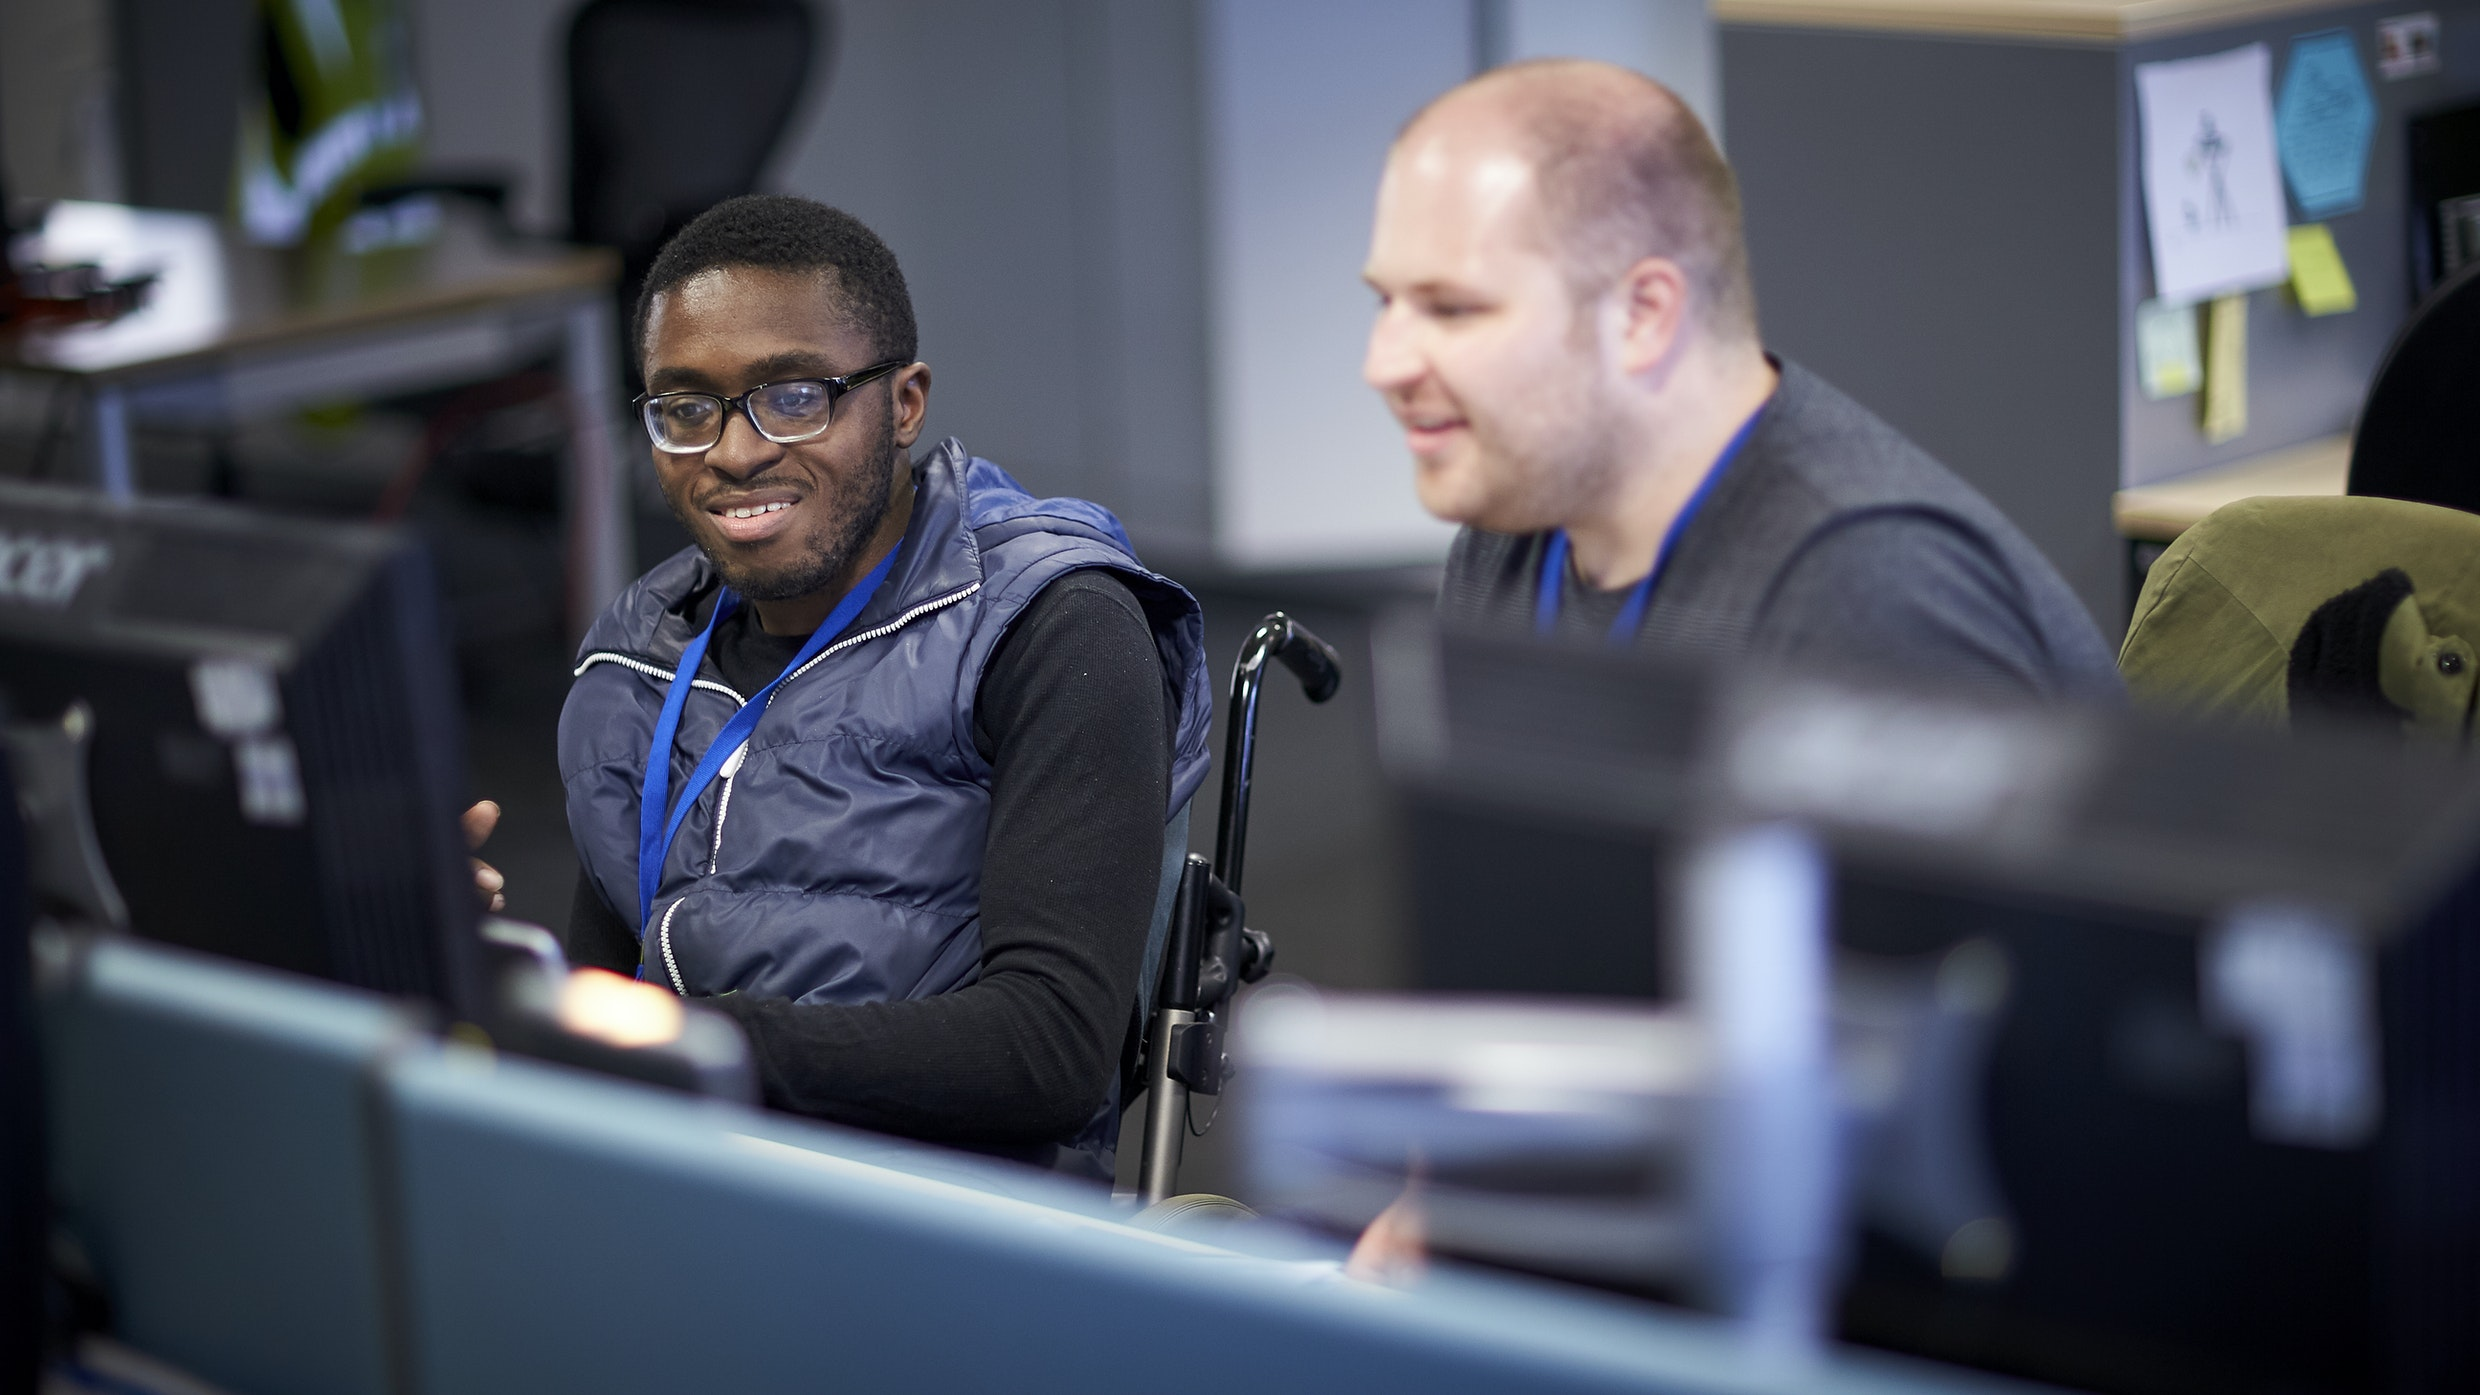 young wheelchair user in office environment with older colleague